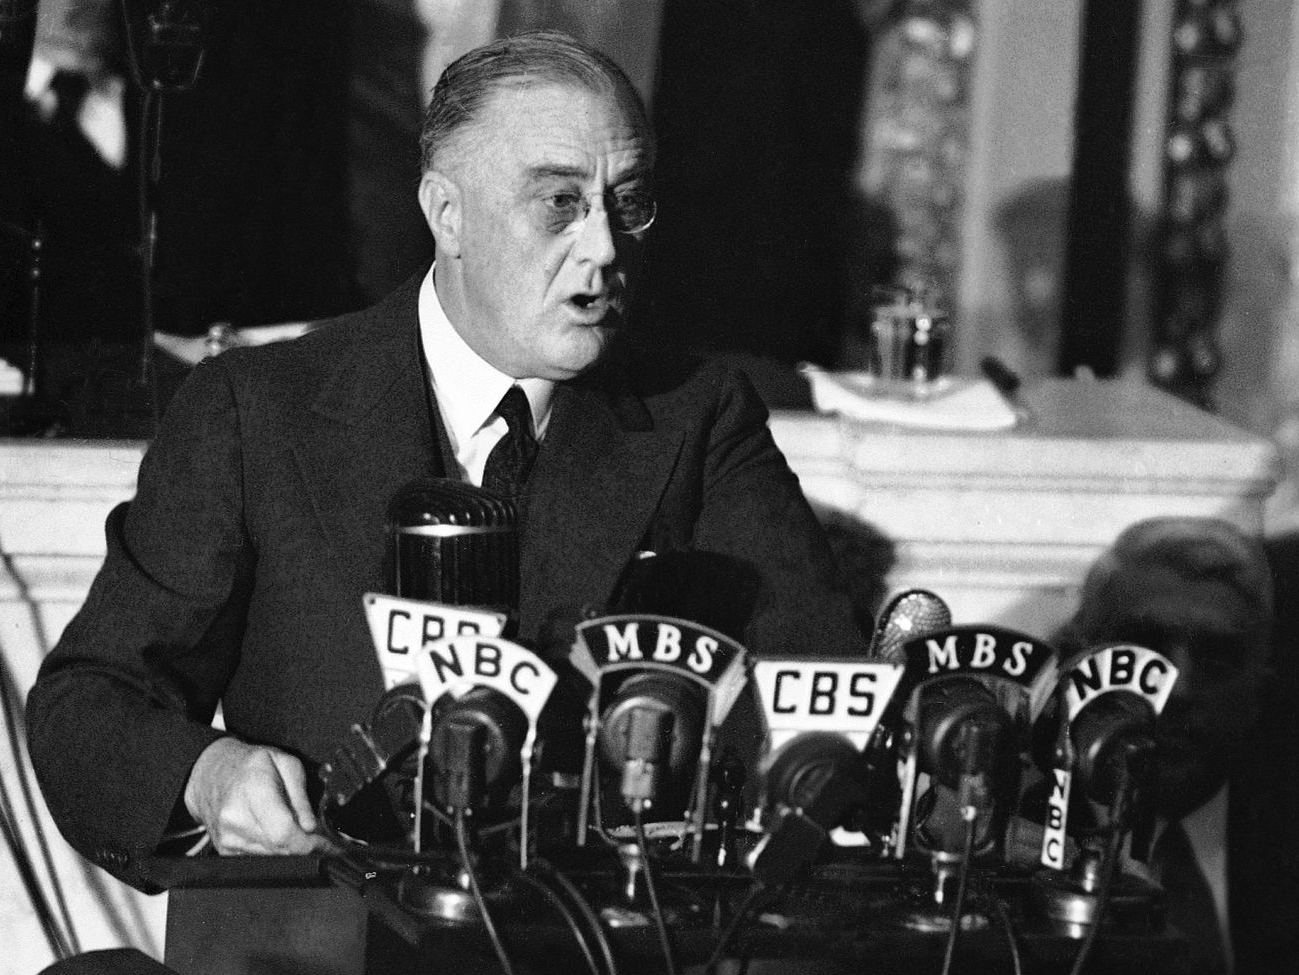 an analysis of president franklin delano roosevelts address to the nation about the pearl harbor att An analysis of franklin d roosevelt's speech after the pearl harbor and president franklin delano the pearl harbor address to the nation is.